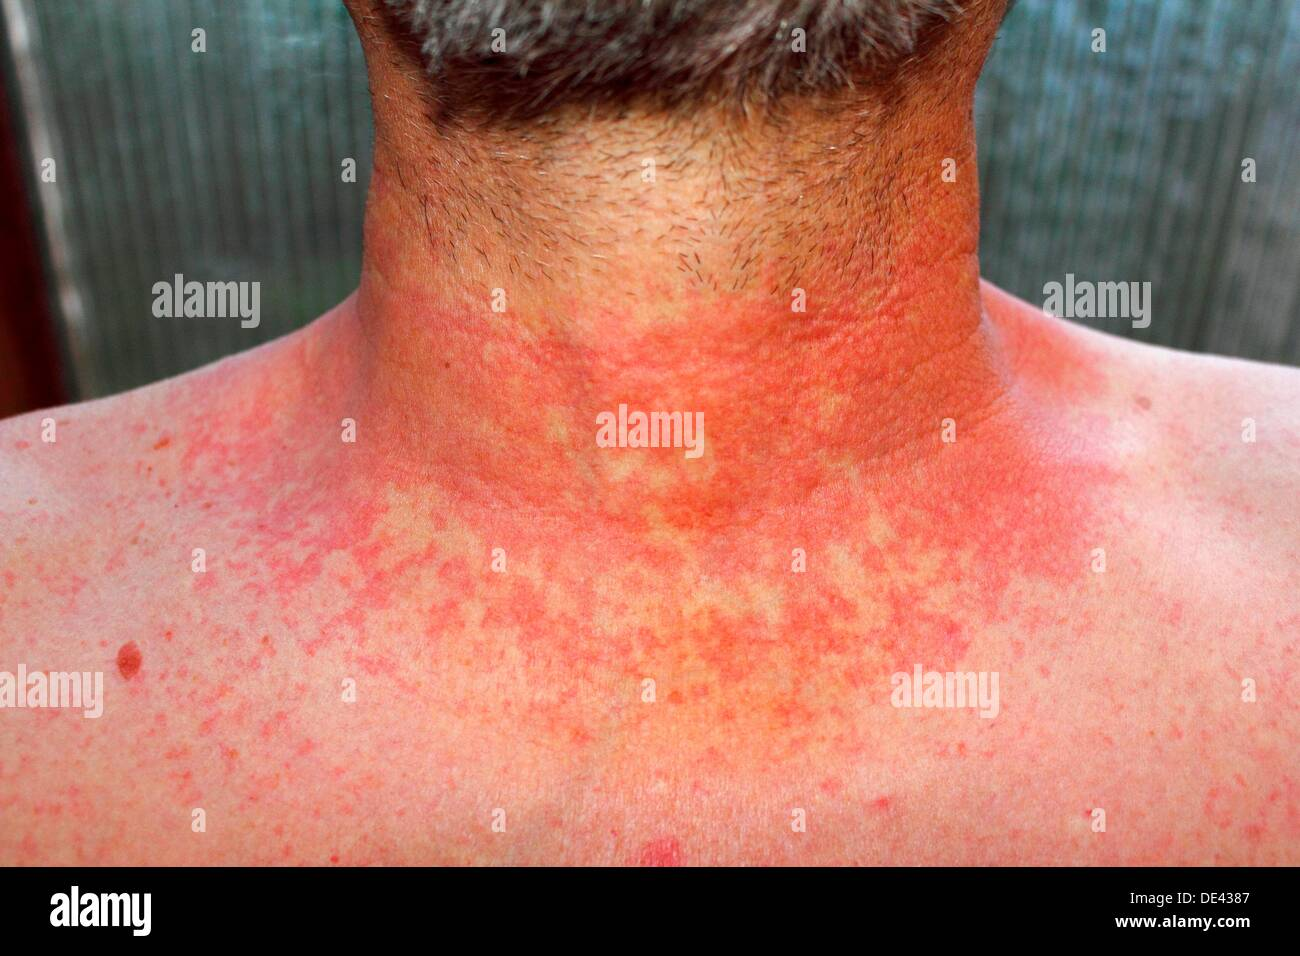 dermititis should be dermatitisRed skin rash on a man´s neck and chest due to scarlet fever, fever, dermatitis or eczema - Stock Image